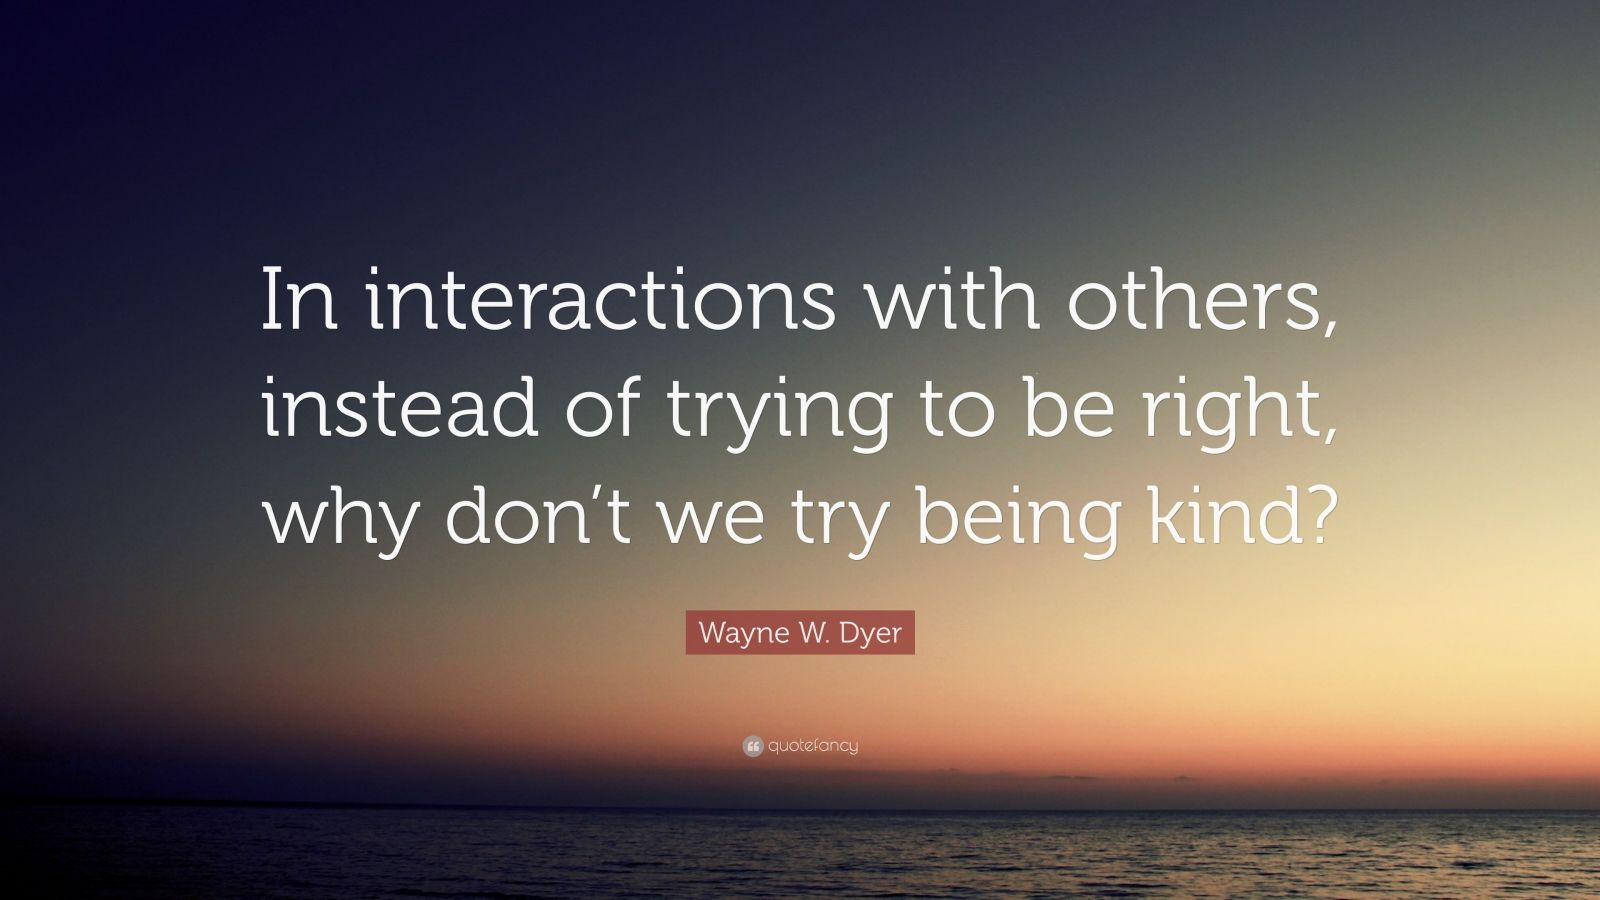 """Wayne W. Dyer Quote: """"In interactions with others, instead of trying to be right, why don't we try being kind?"""""""